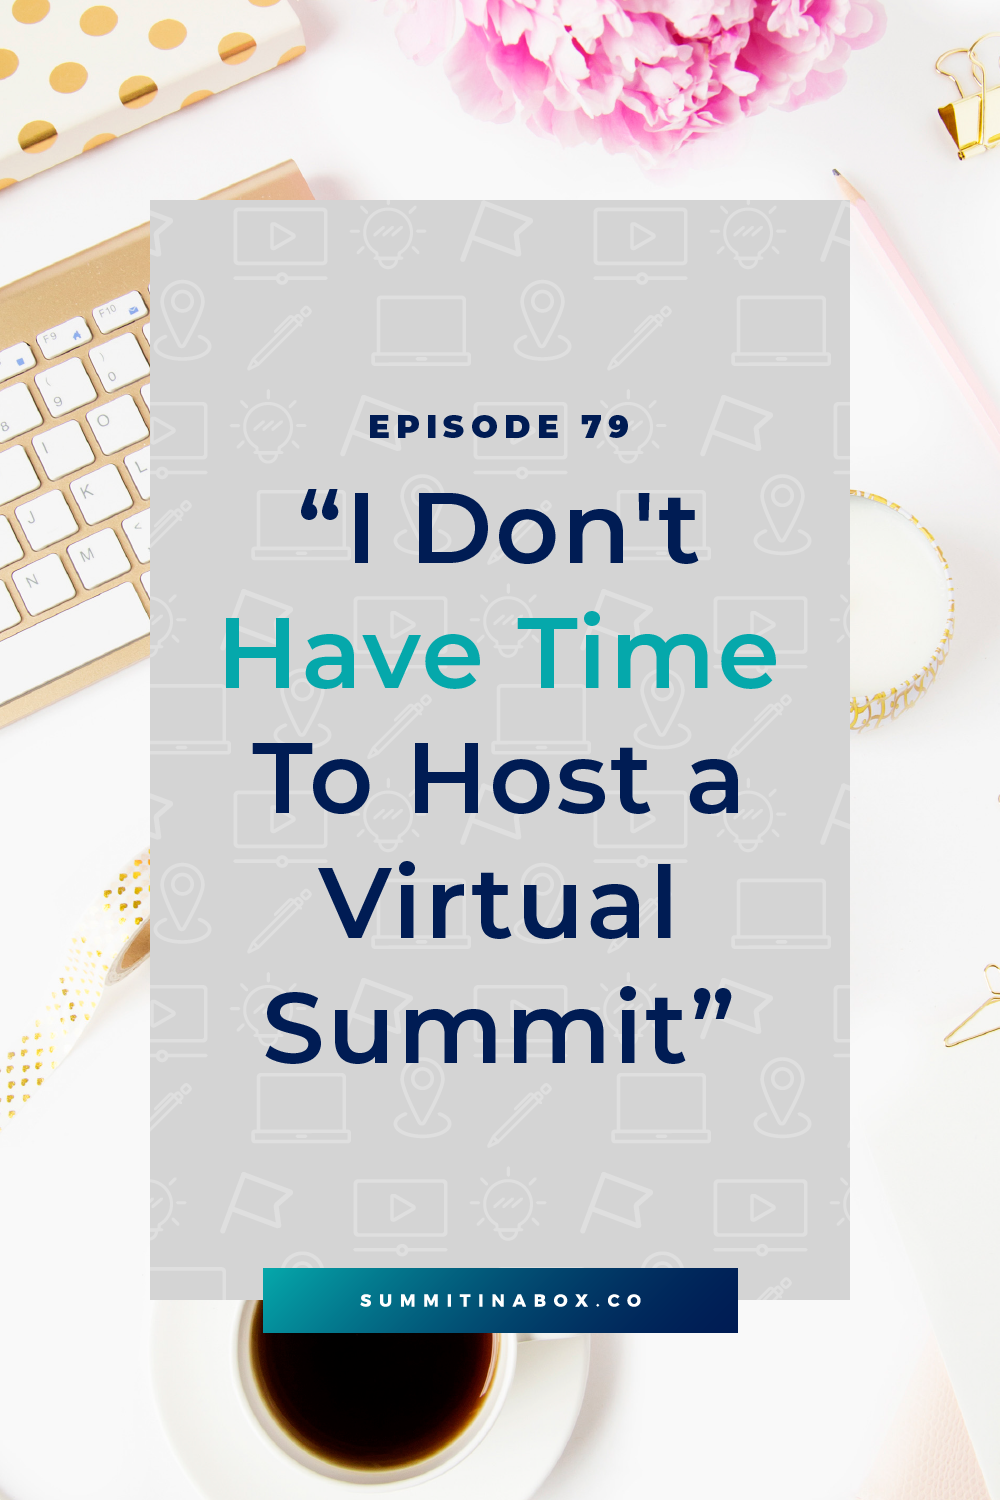 Is your business already too busy? Here's a simple strategy to fit a virtual summit into your business when you just don't have time.